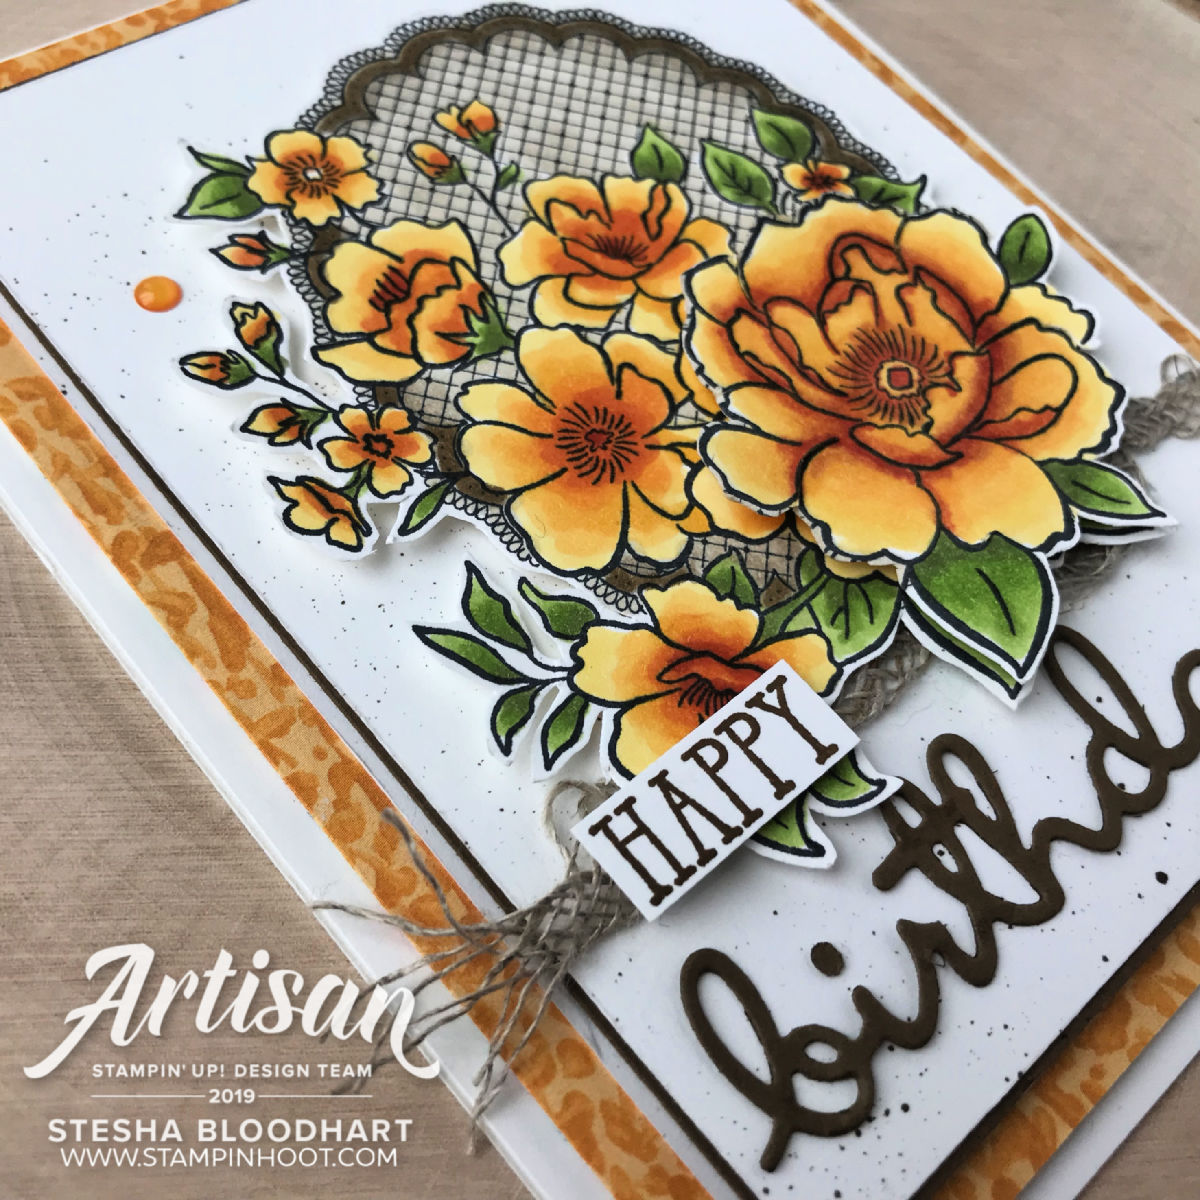 Lovely Lattice Cling Mount Sale-A-Bration Stamp Set by Stampin' Up! Earn FREE with a $50 Purchase Card created by Stesha Bloodhart, Stampin' Hoot! 2019 Artisan Design Team